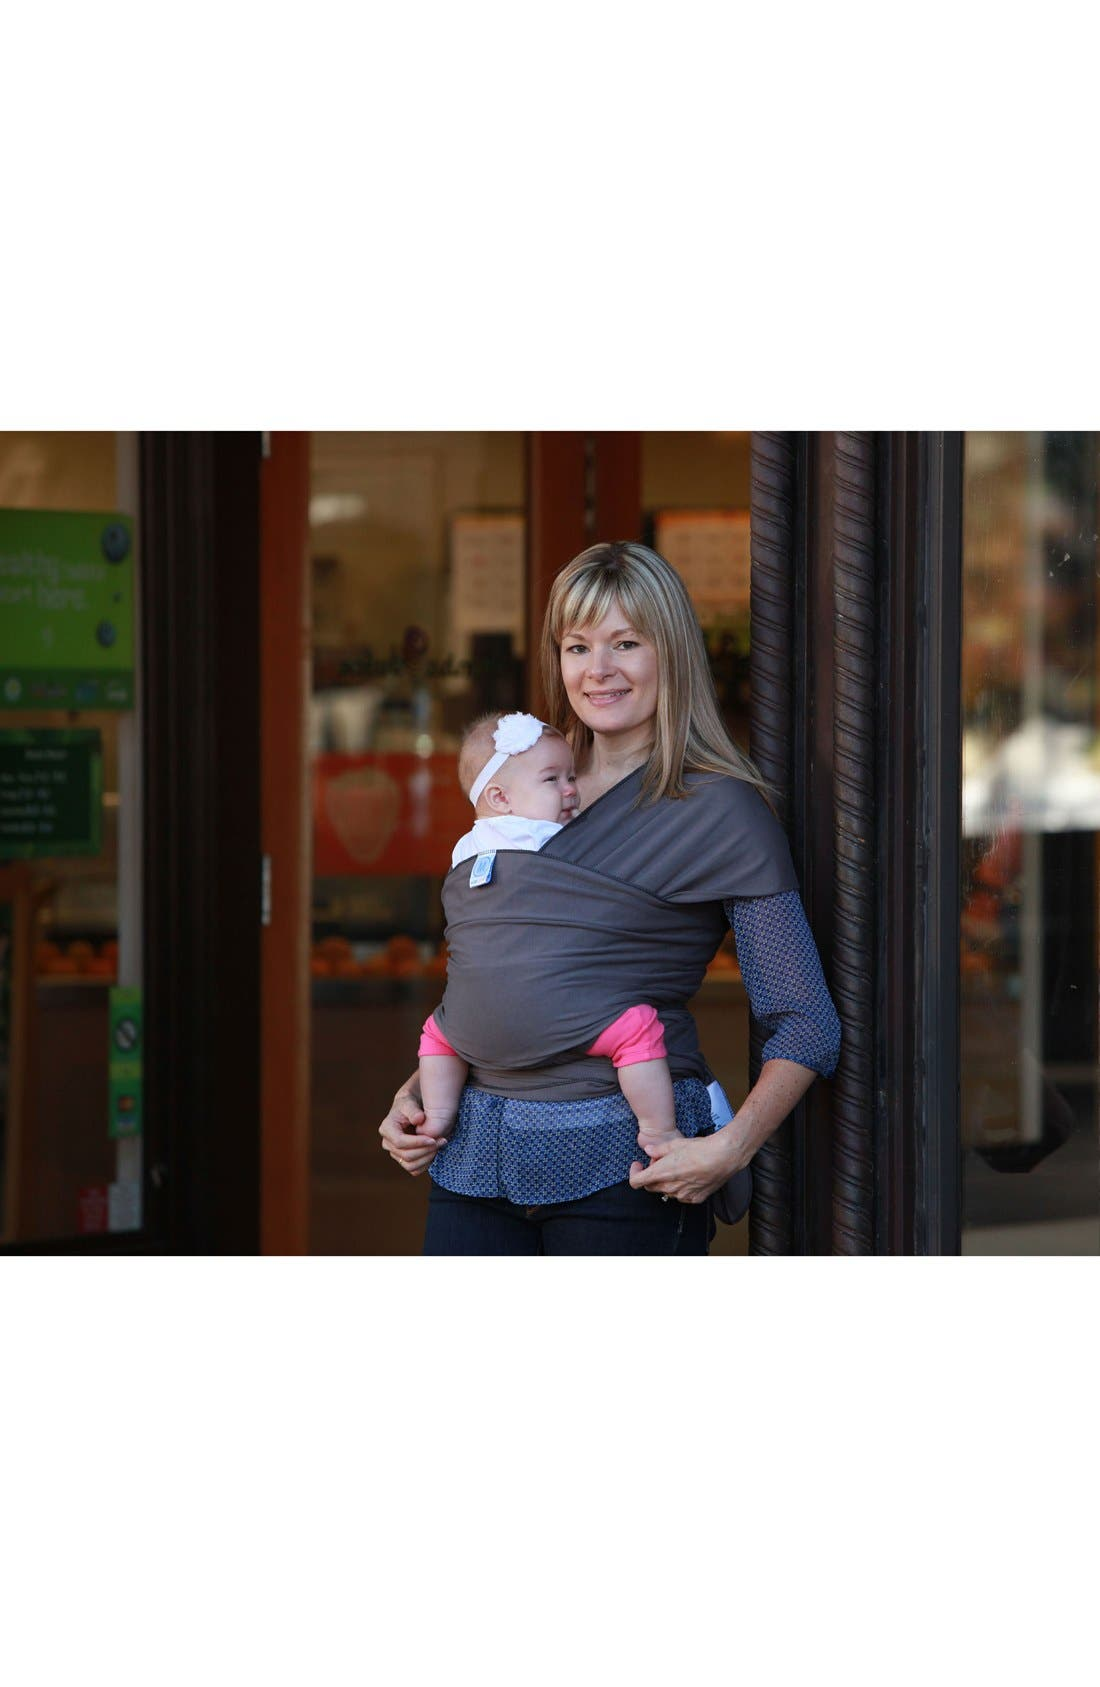 Wrap 'Moderns' Baby Carrier,                             Alternate thumbnail 2, color,                             020